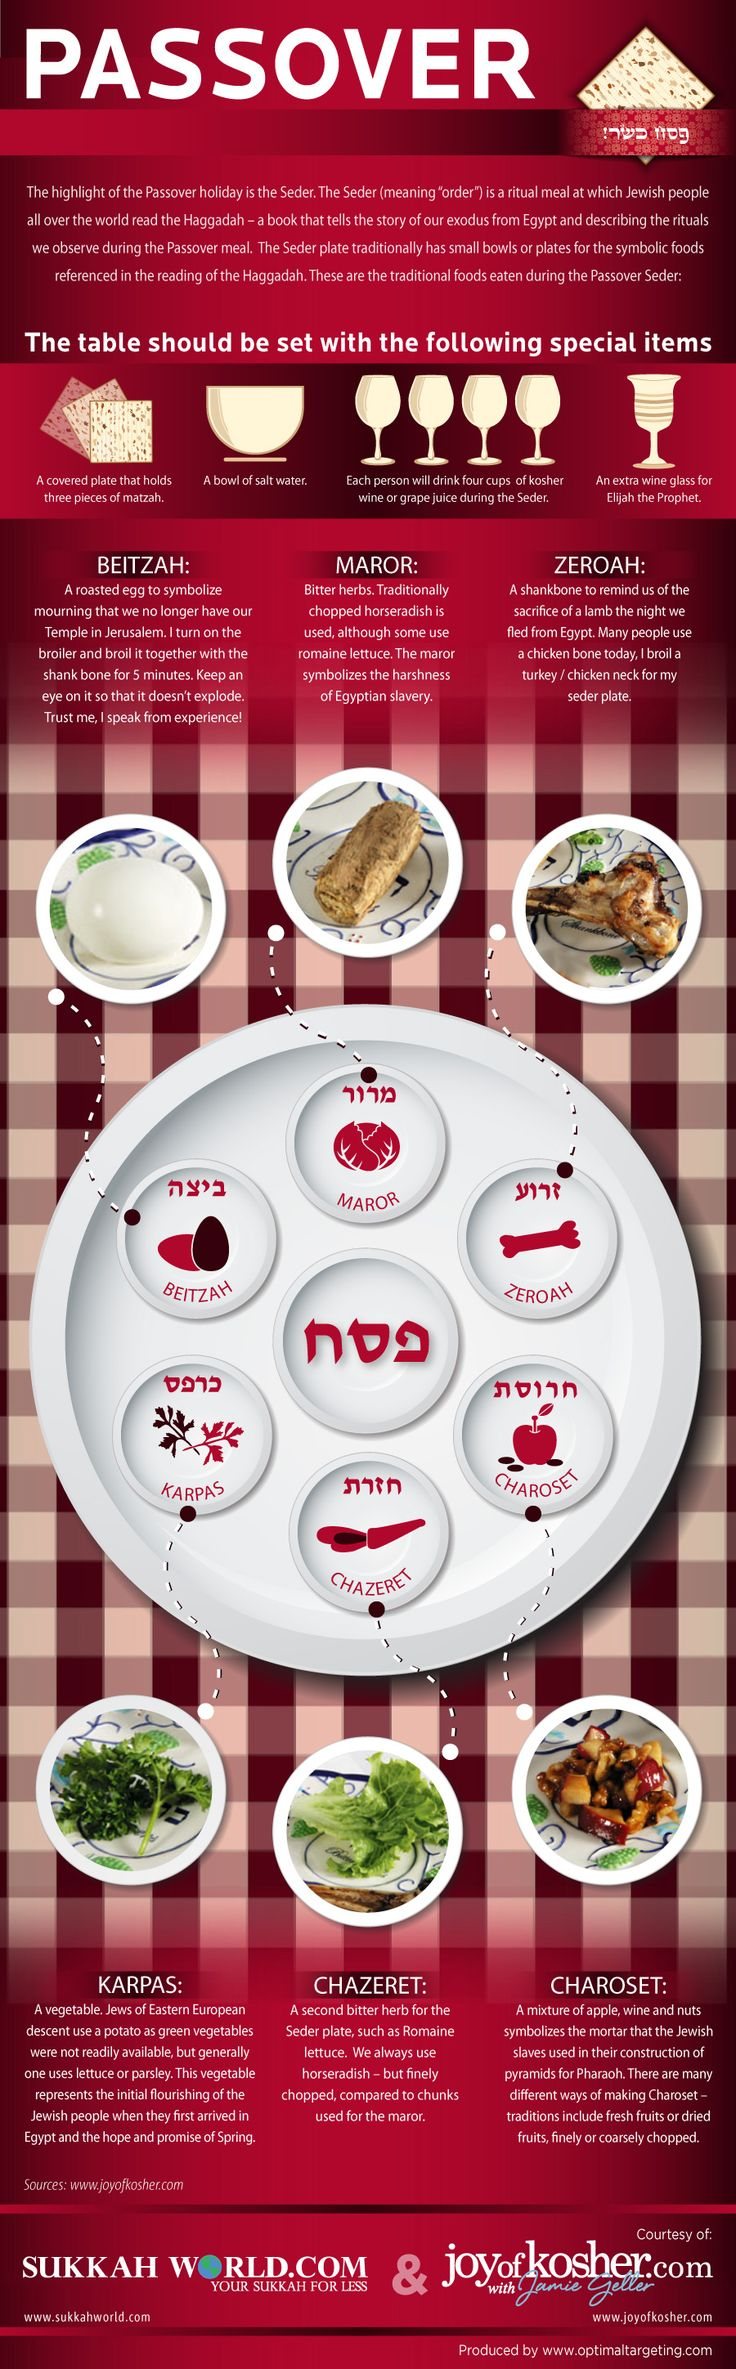 Passover - the Seder meal (if you're a vegetarian use a ripe beet in place of a shankbone).